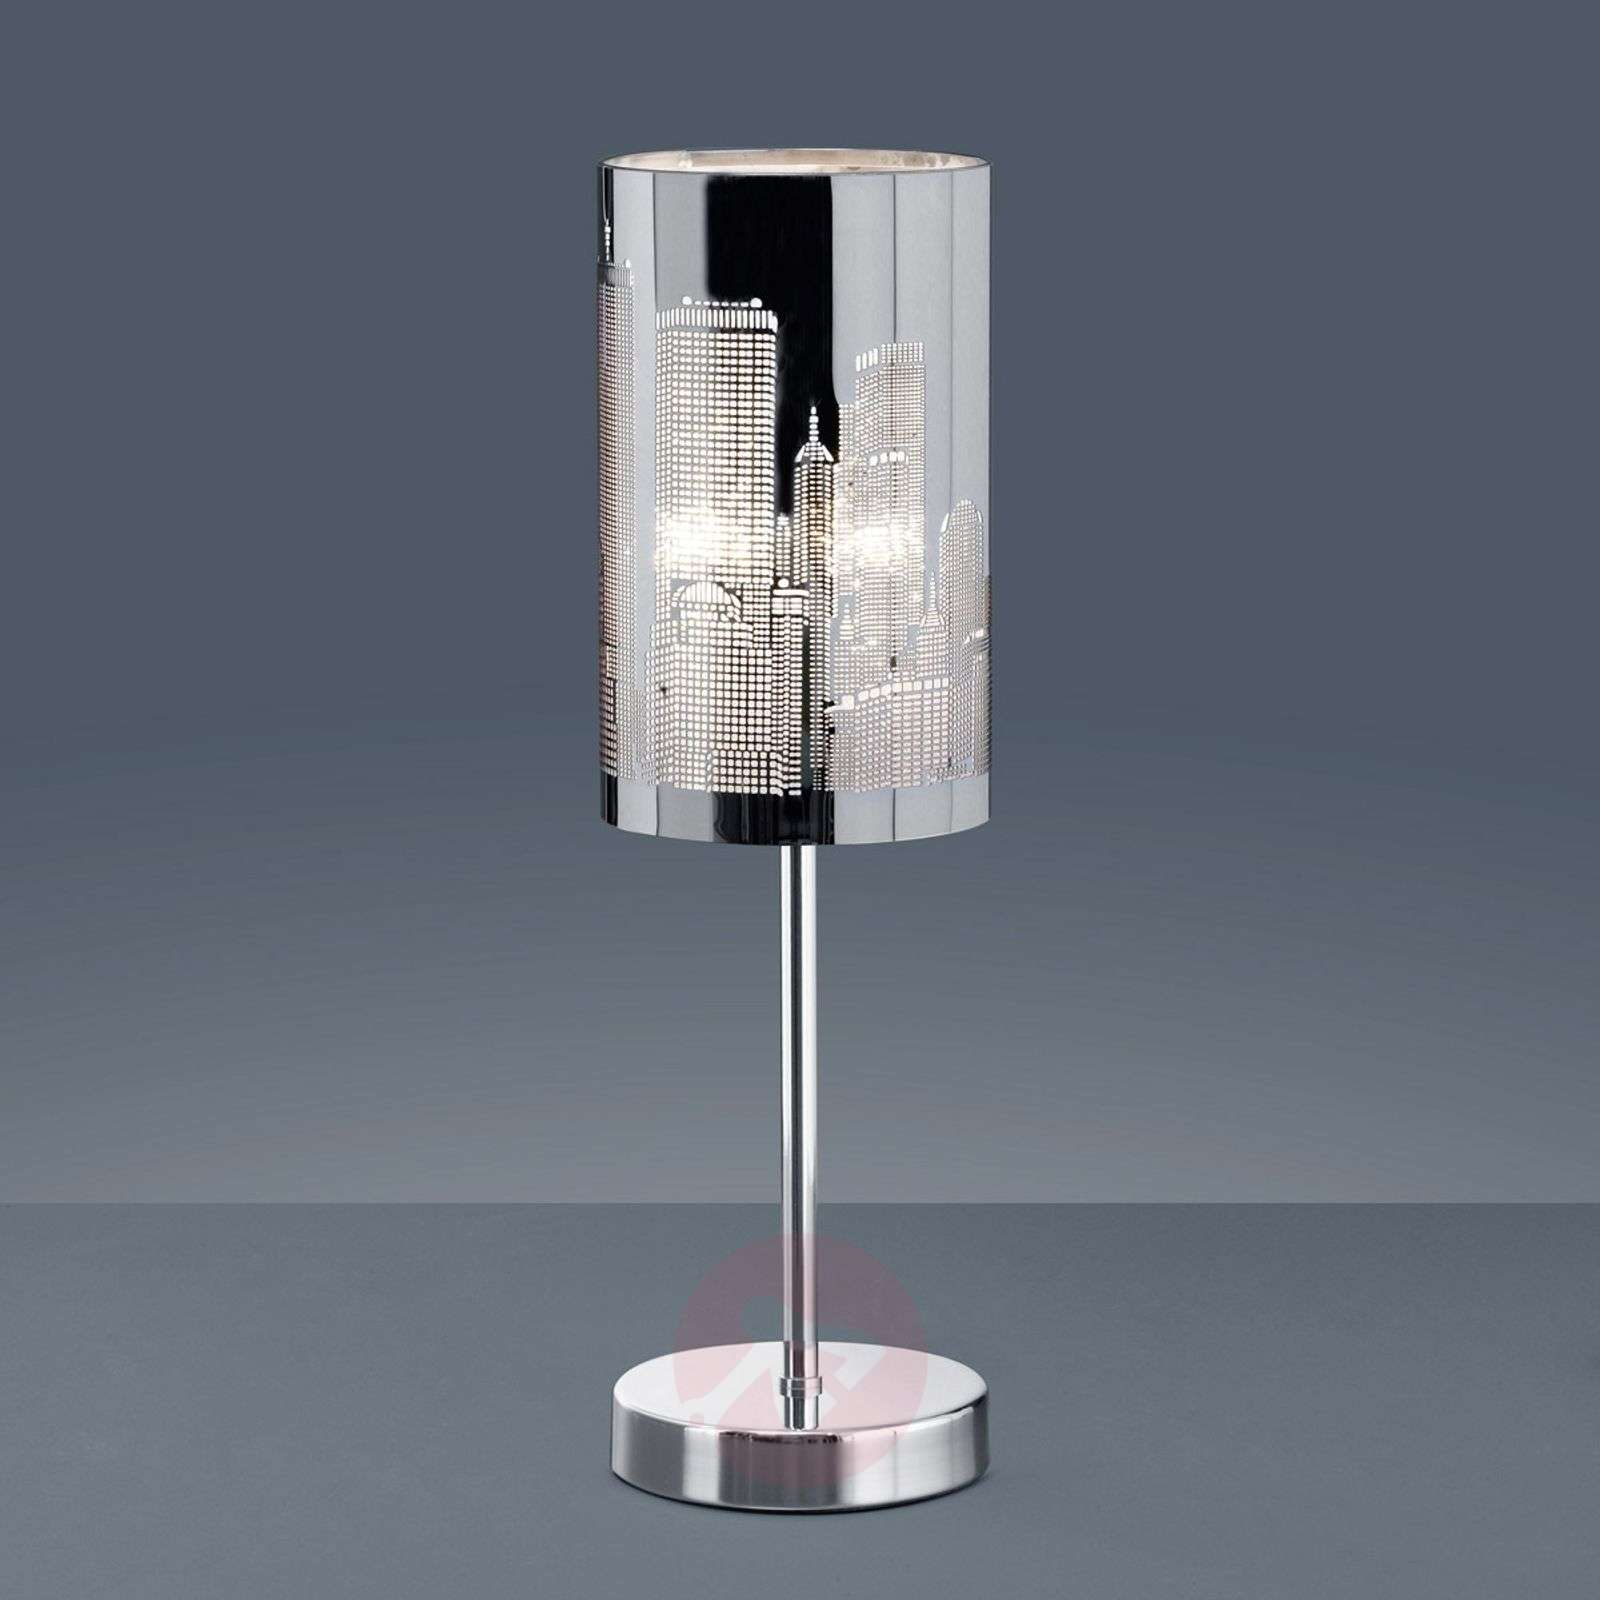 Skyline table lamp with touch switch-9004470-01